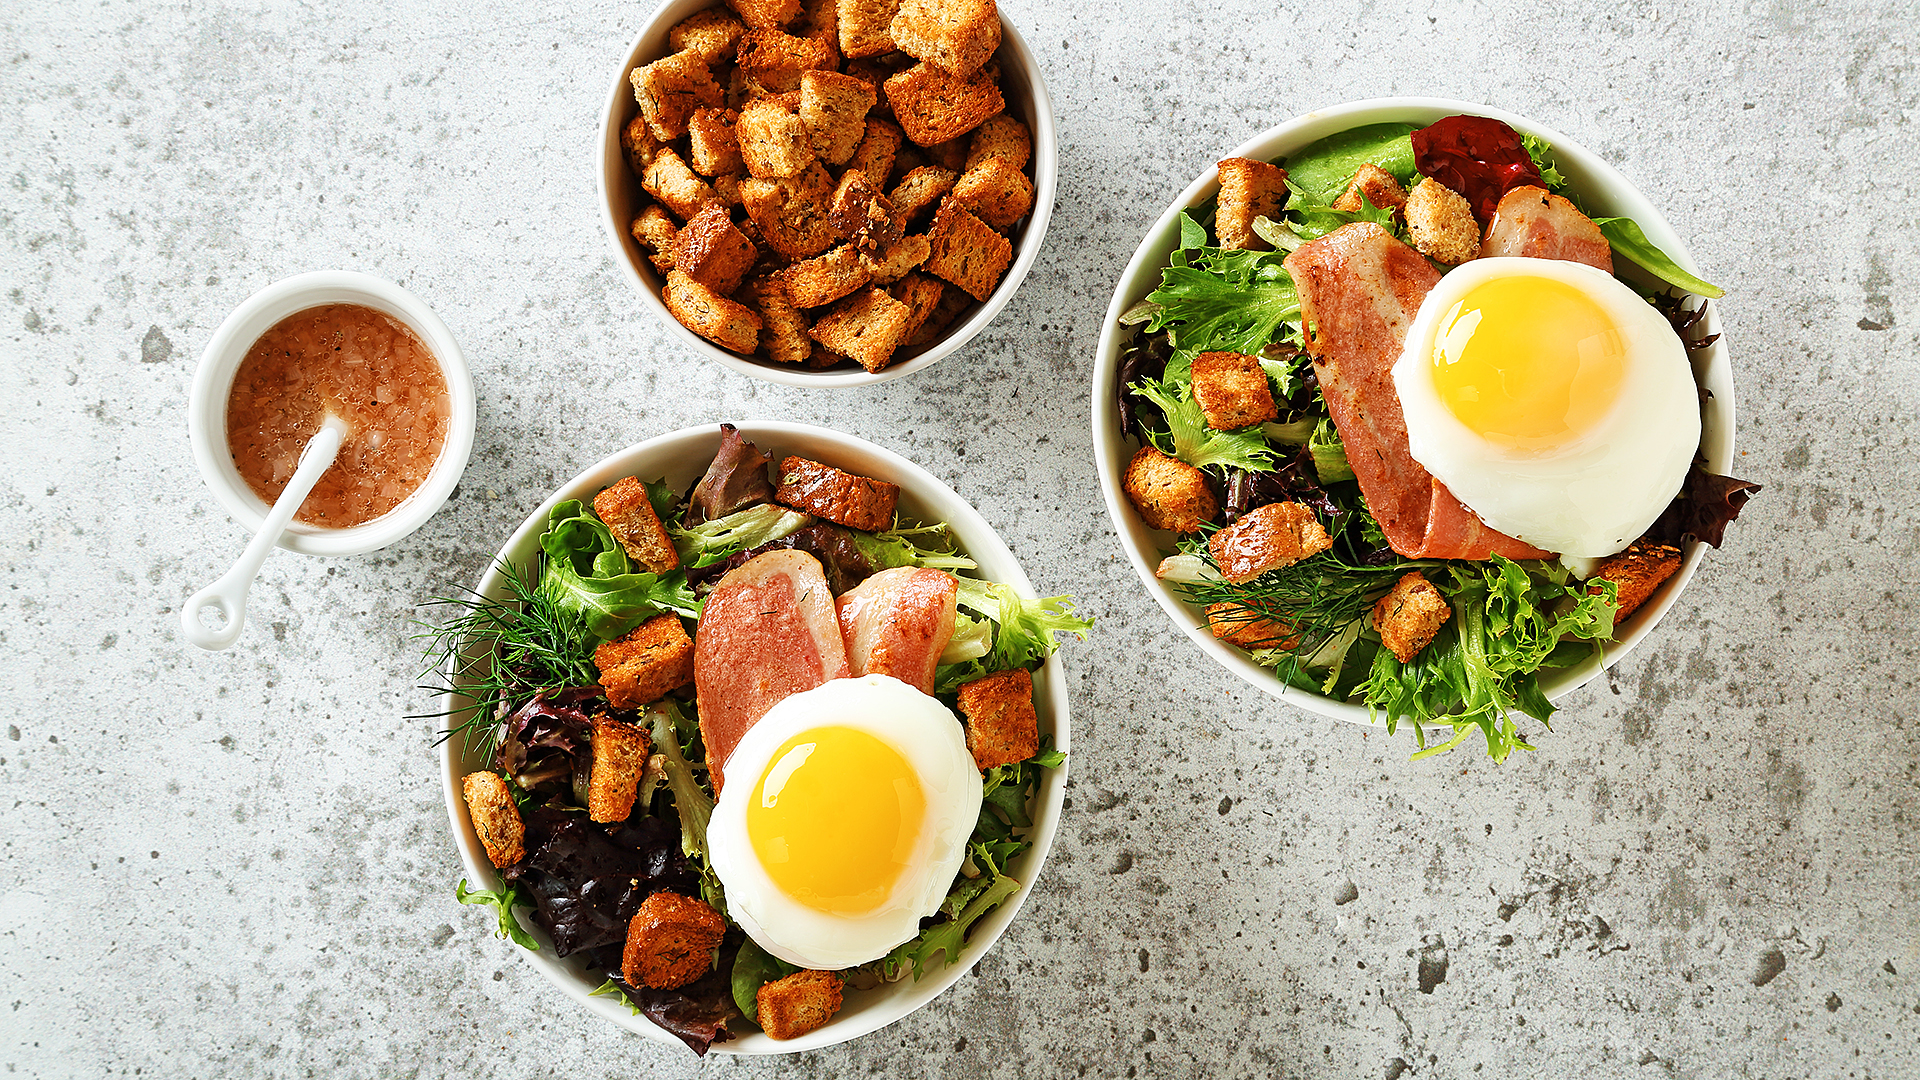 Bistro turkey bacon salad with a sunny side egg on top and a bowl of croutons on the side.